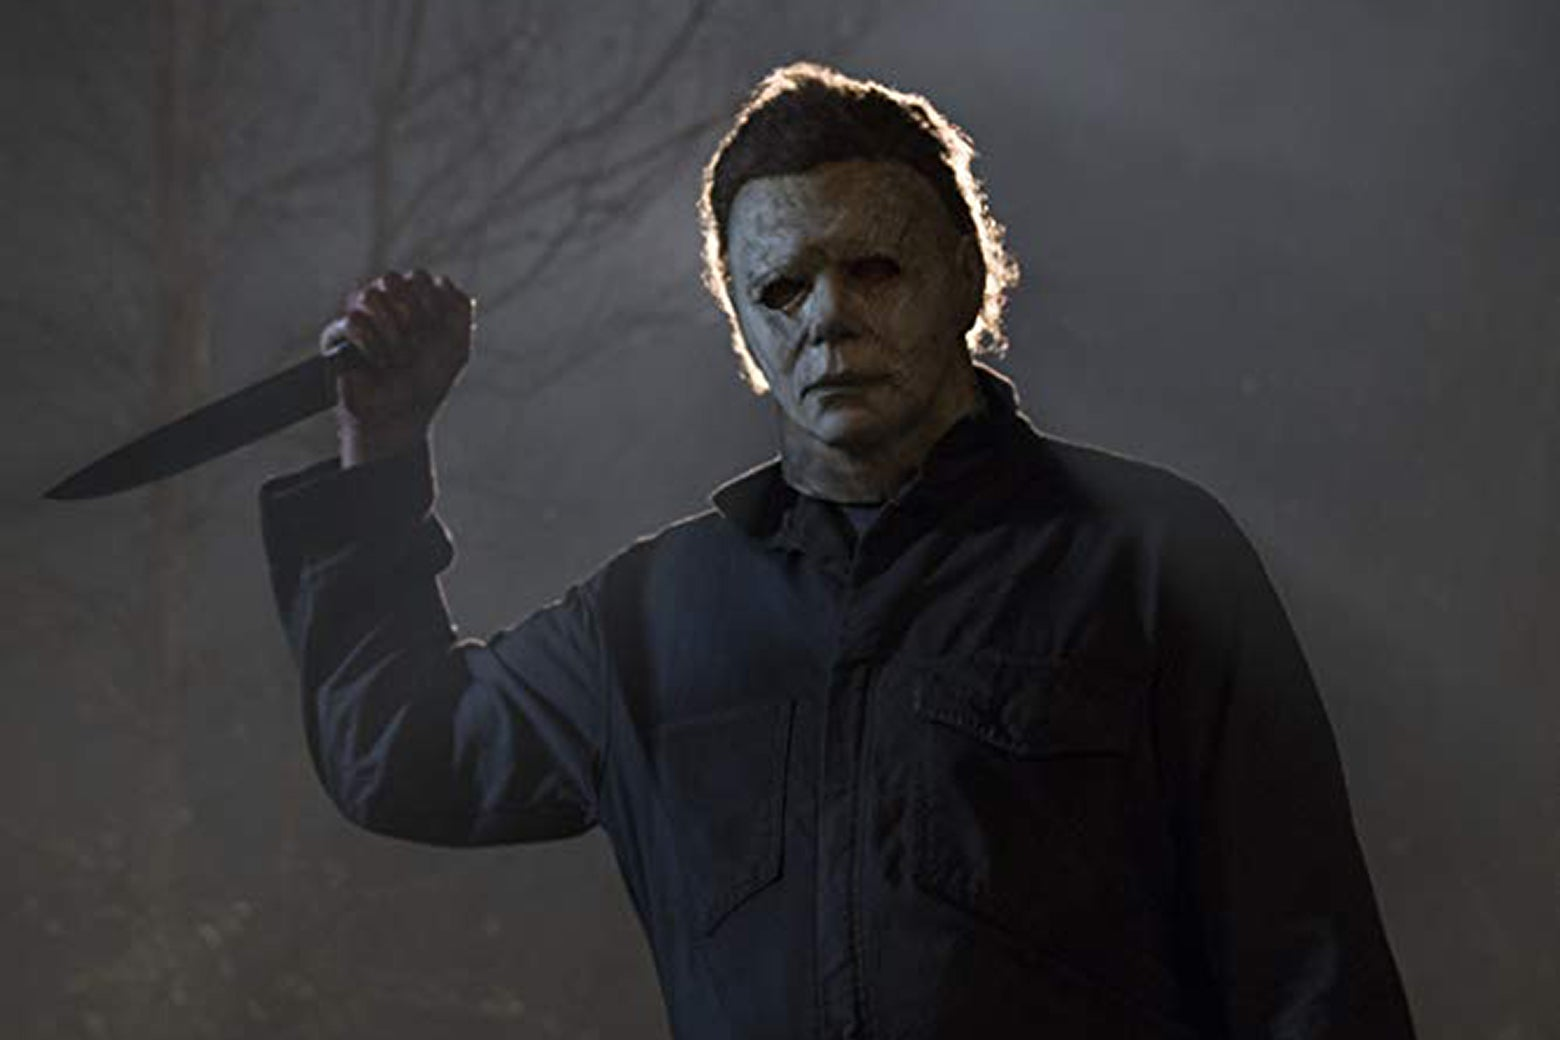 Michael Myers brandishes a butcher knife.